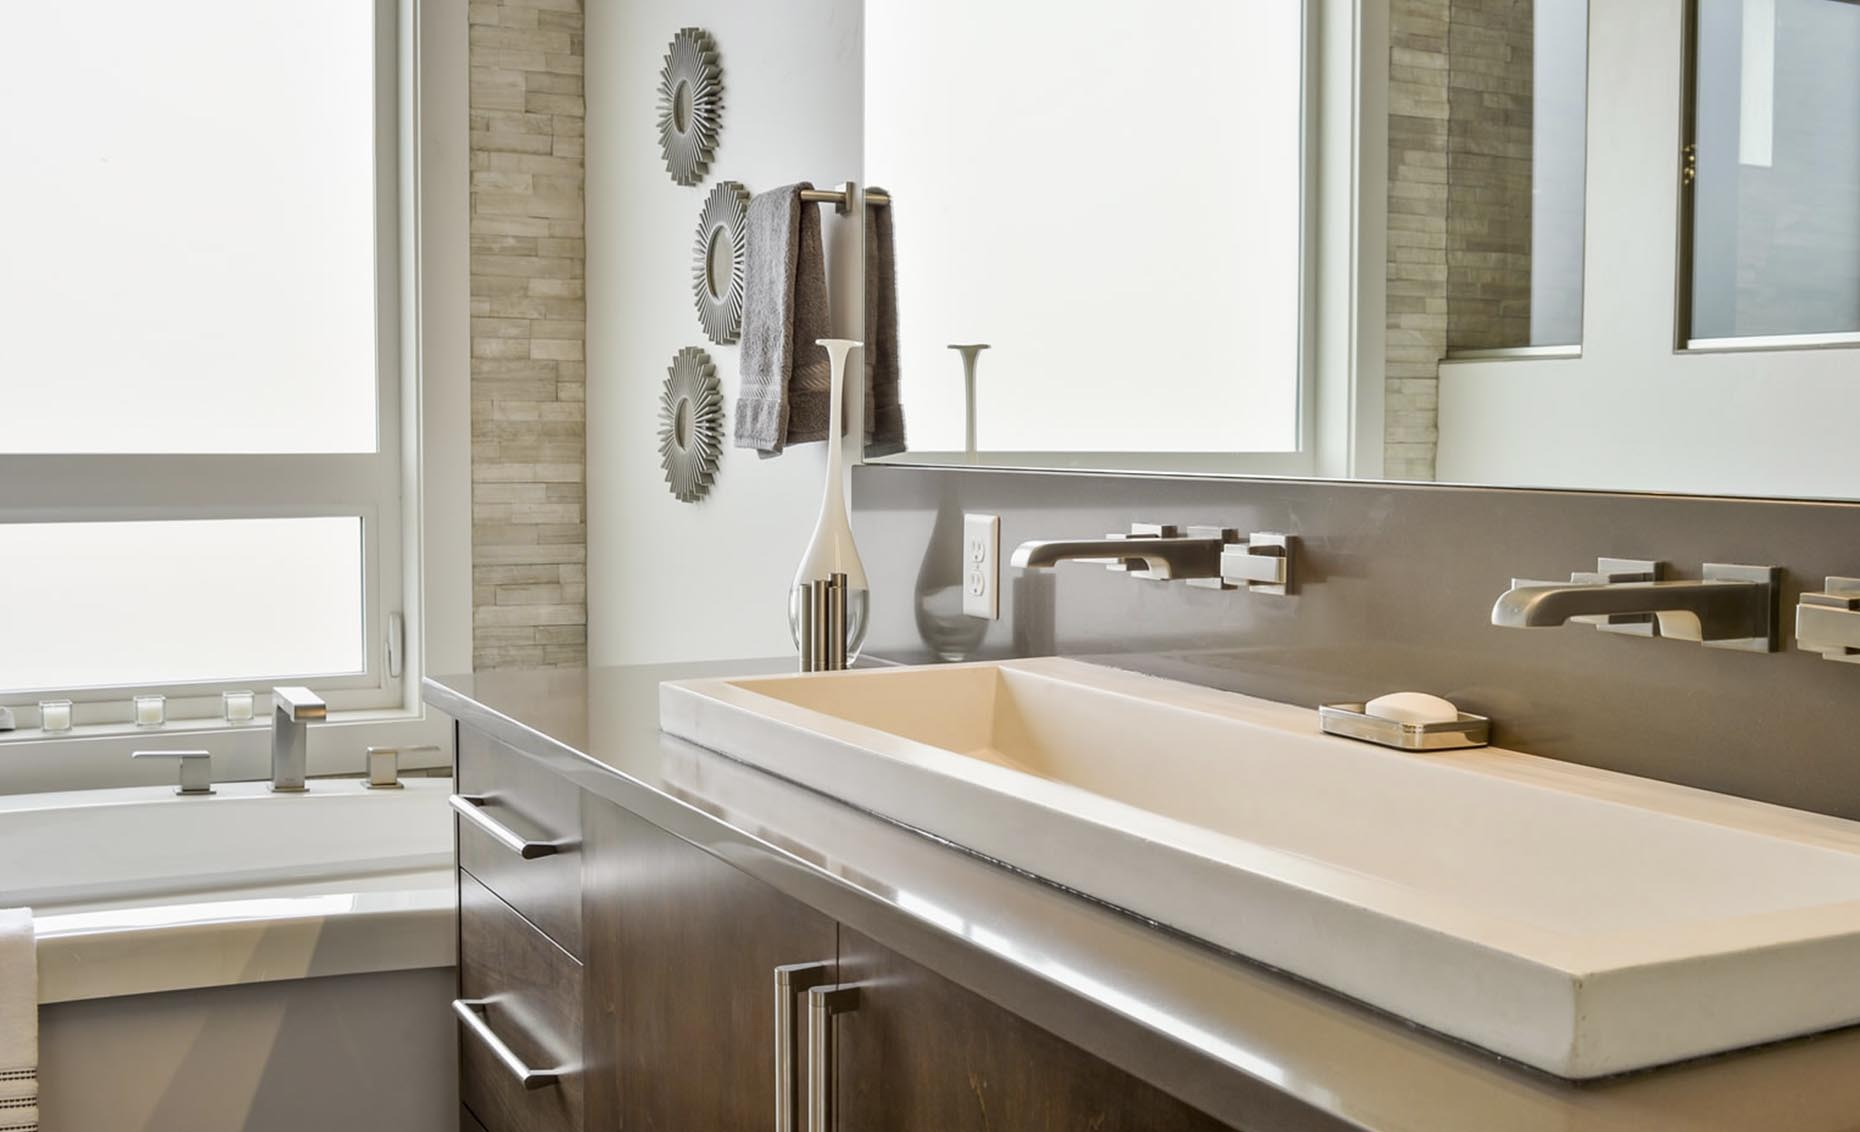 The Salmon Falls House Master Bathroom Sinks